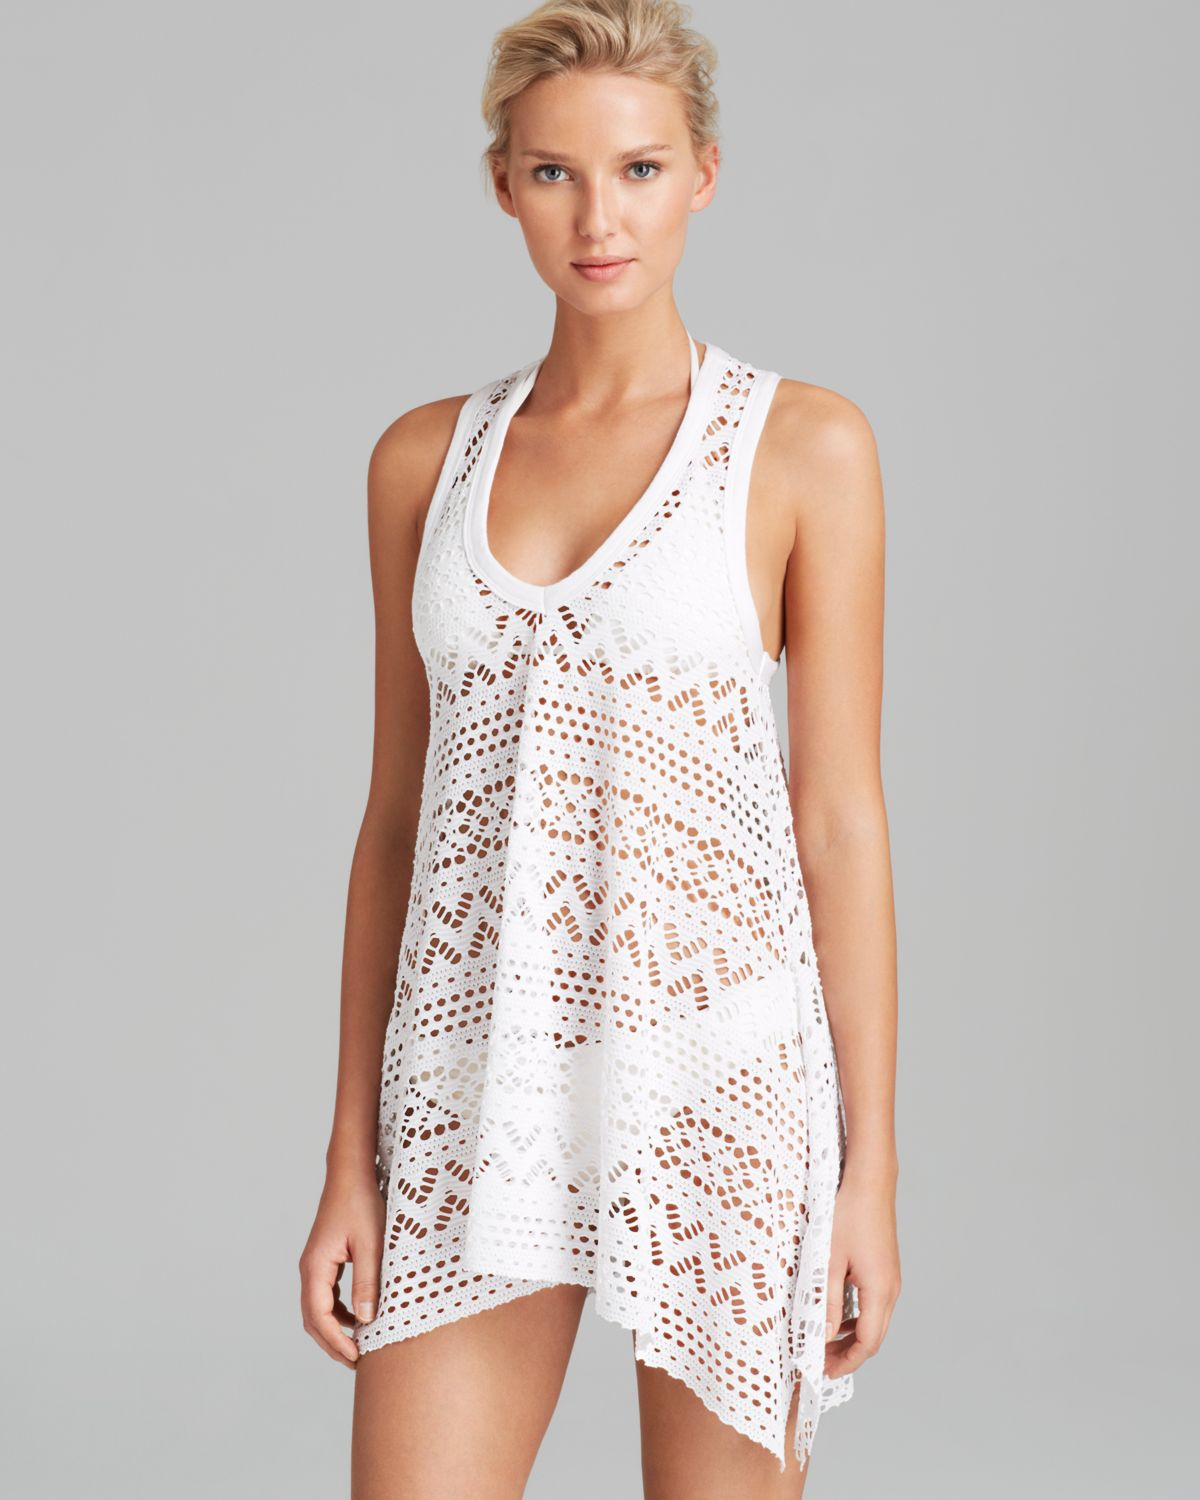 Swimsuit cover up dress long